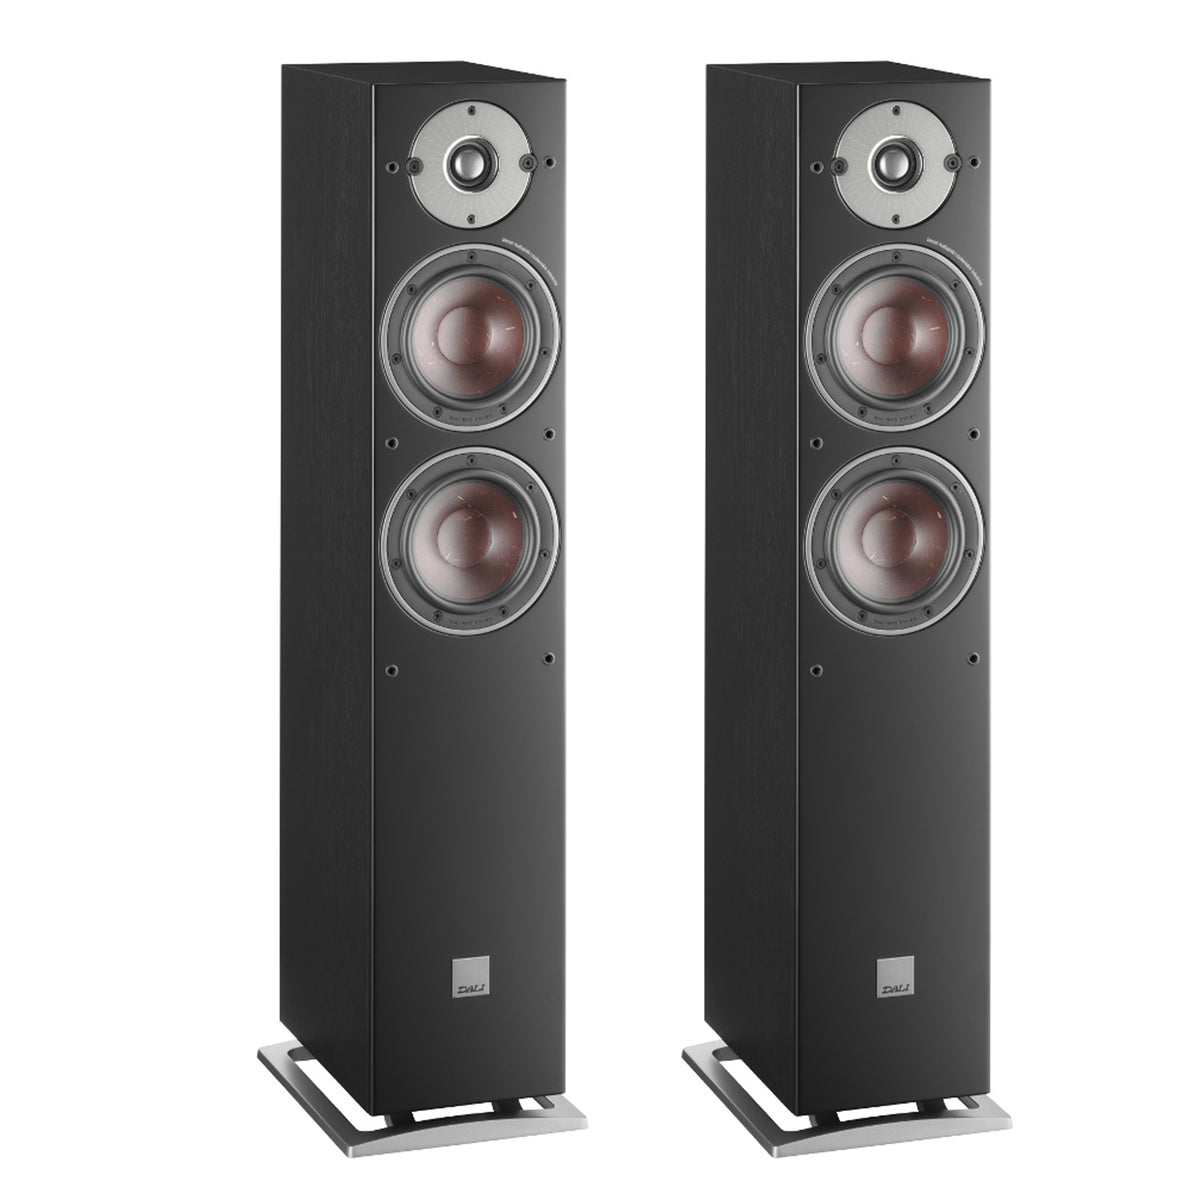 Dali: Oberon 5 Passive Floorstanding Speakers - Black (Pair)